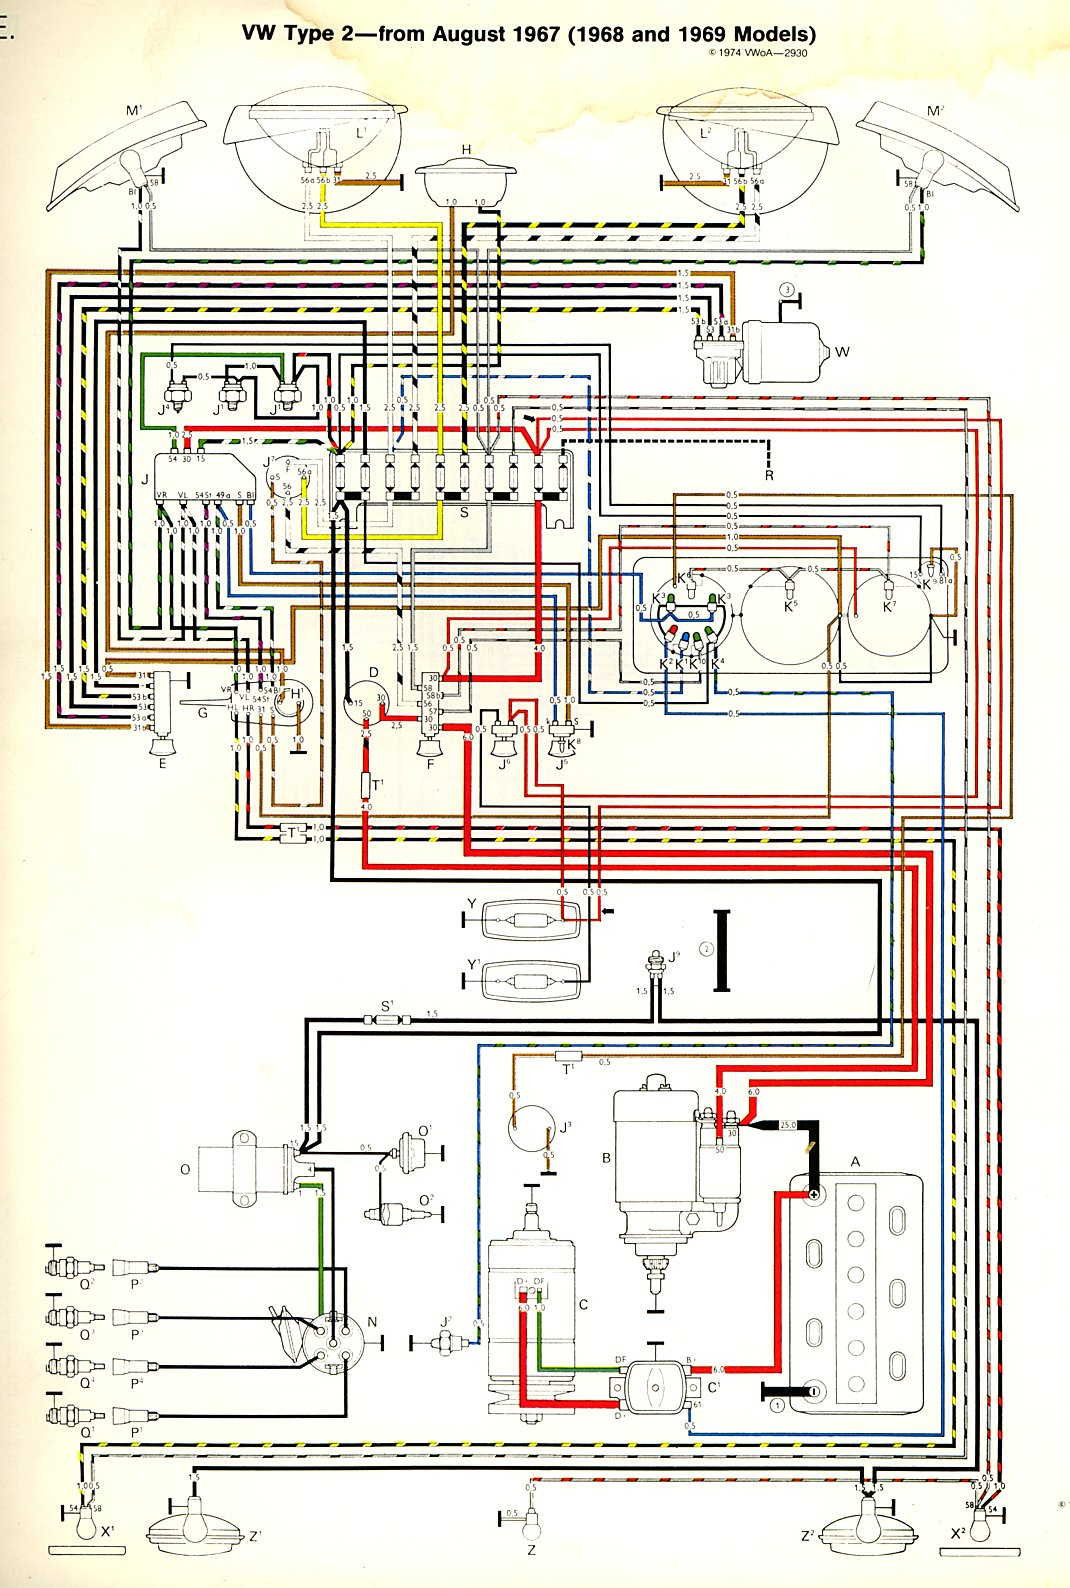 1968 69 bus wiring diagram thegoldenbug com thesamba com type 2 wiring diagrams